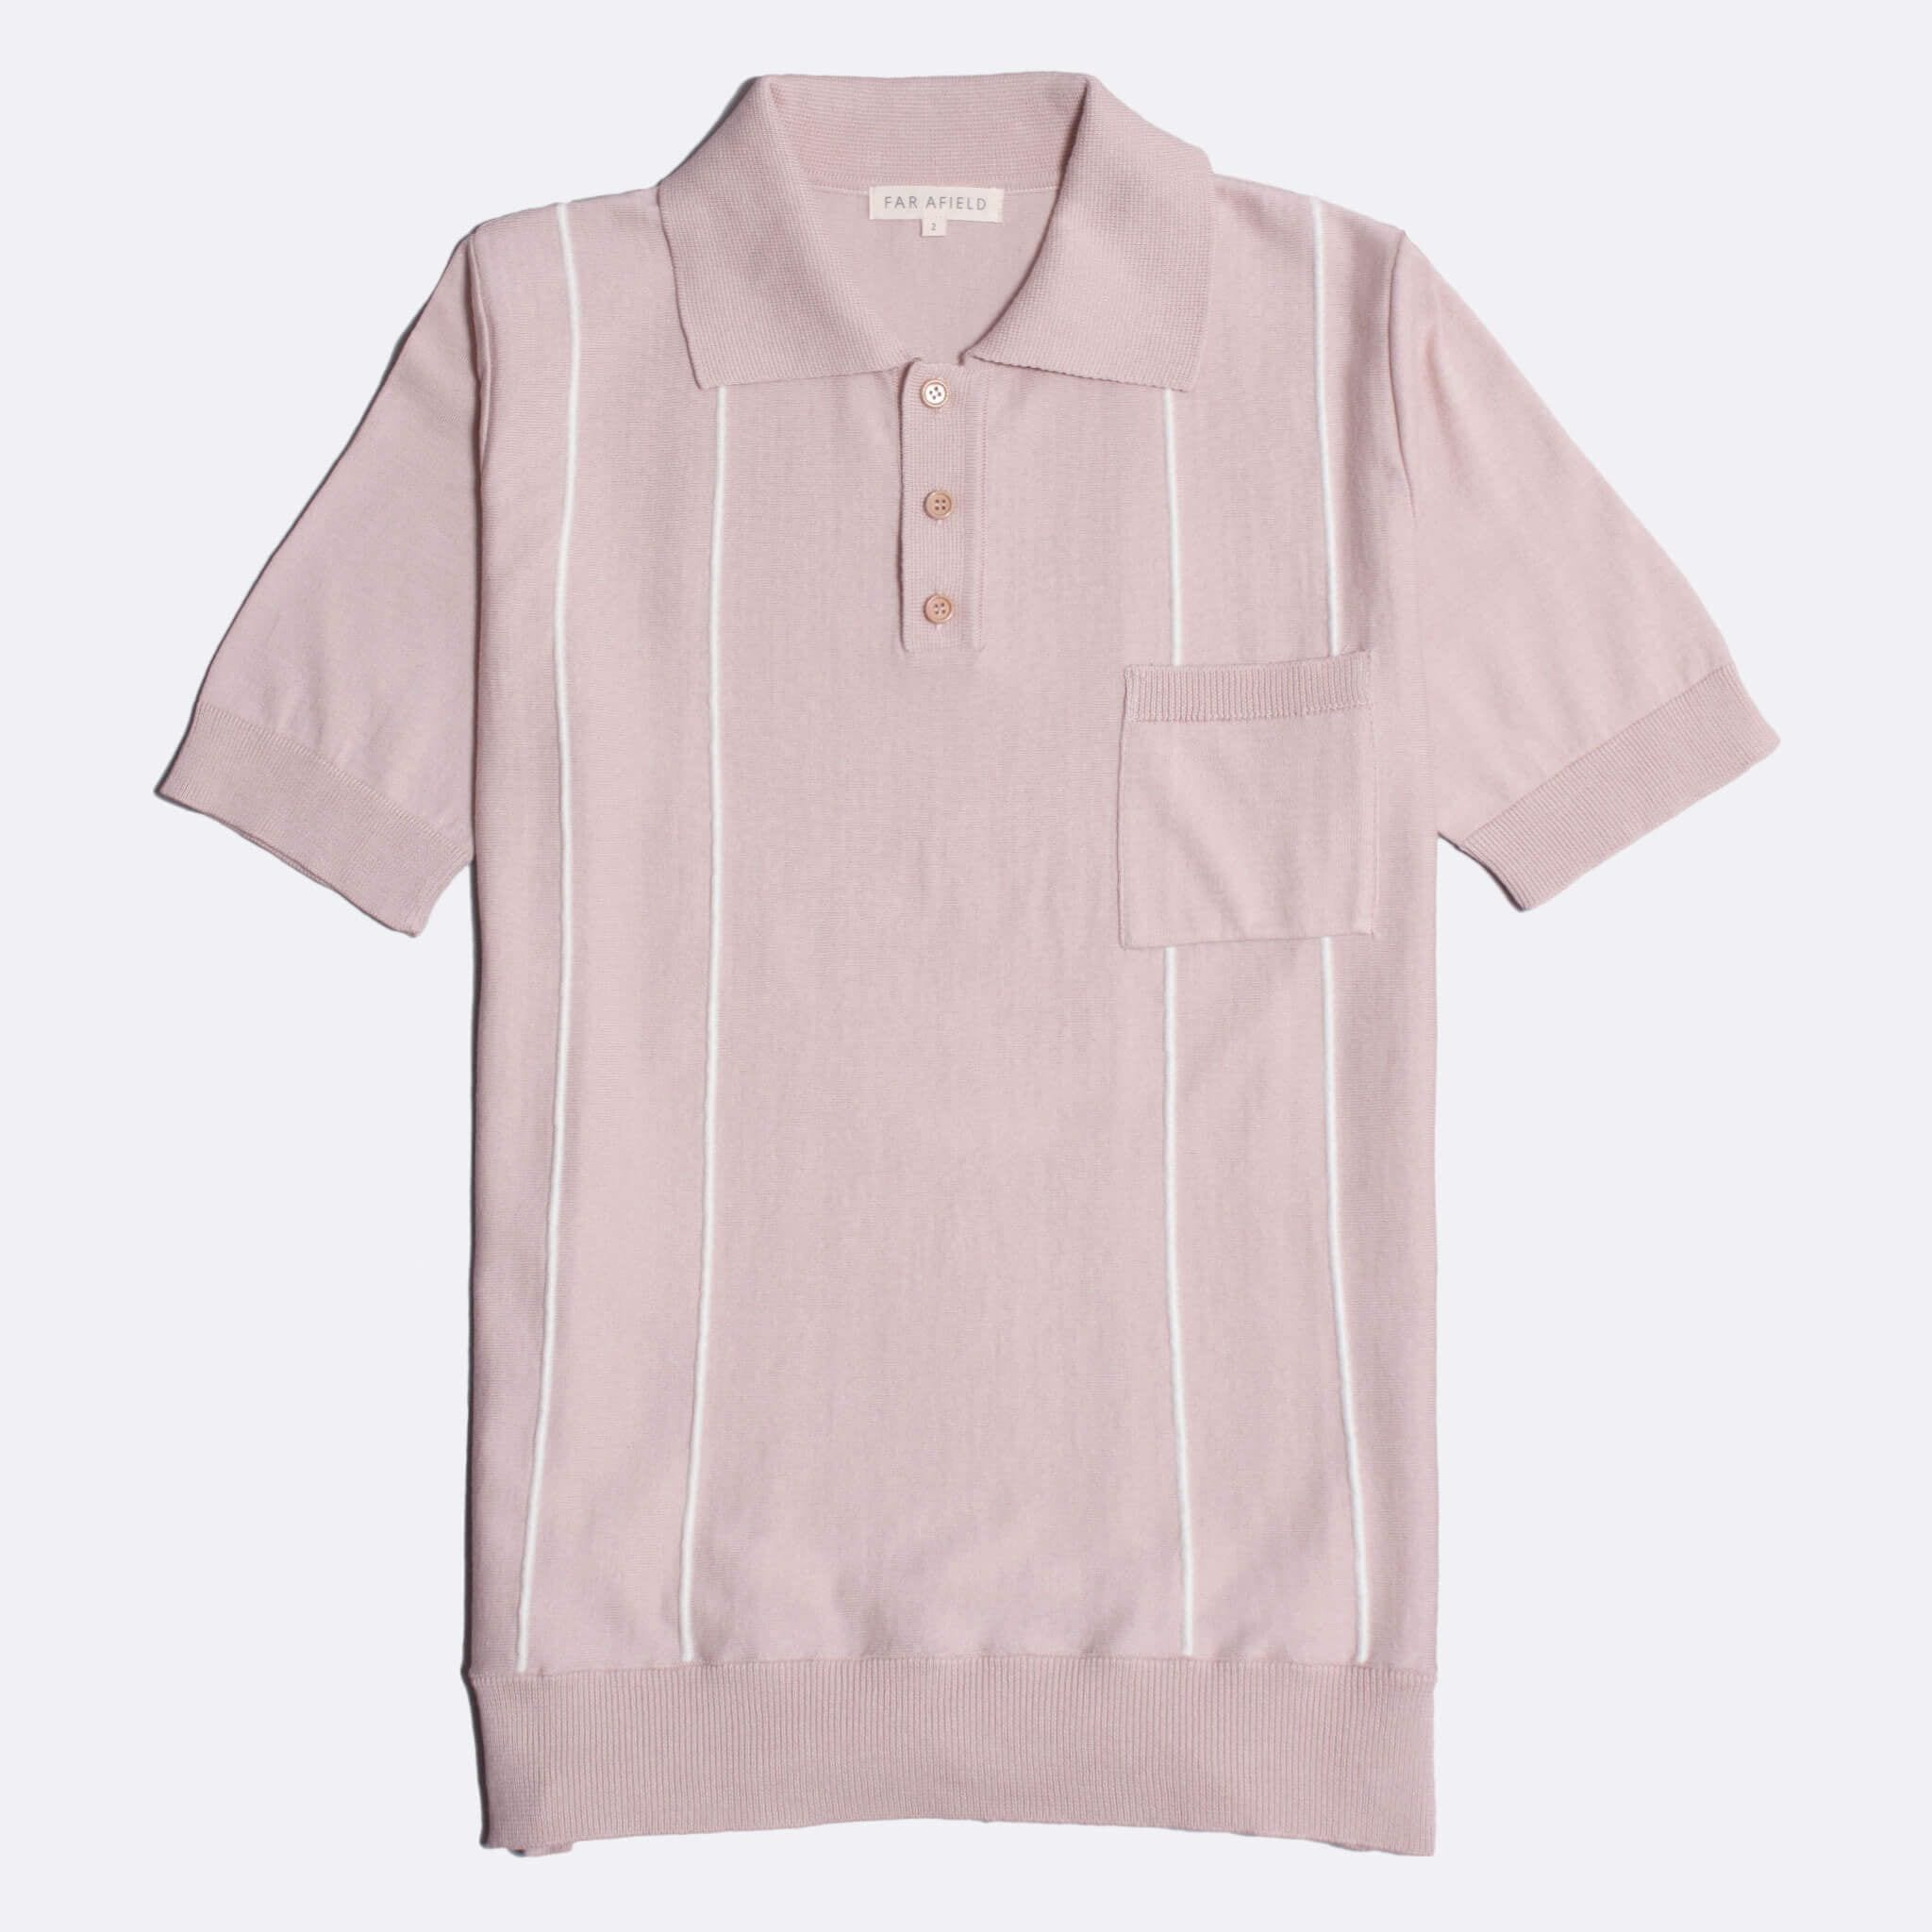 Far Afield Alfaro Short Sleeve Polo a Dust Pink BCI Cotton Fabric Italian Mod Knitwear Smart Casual